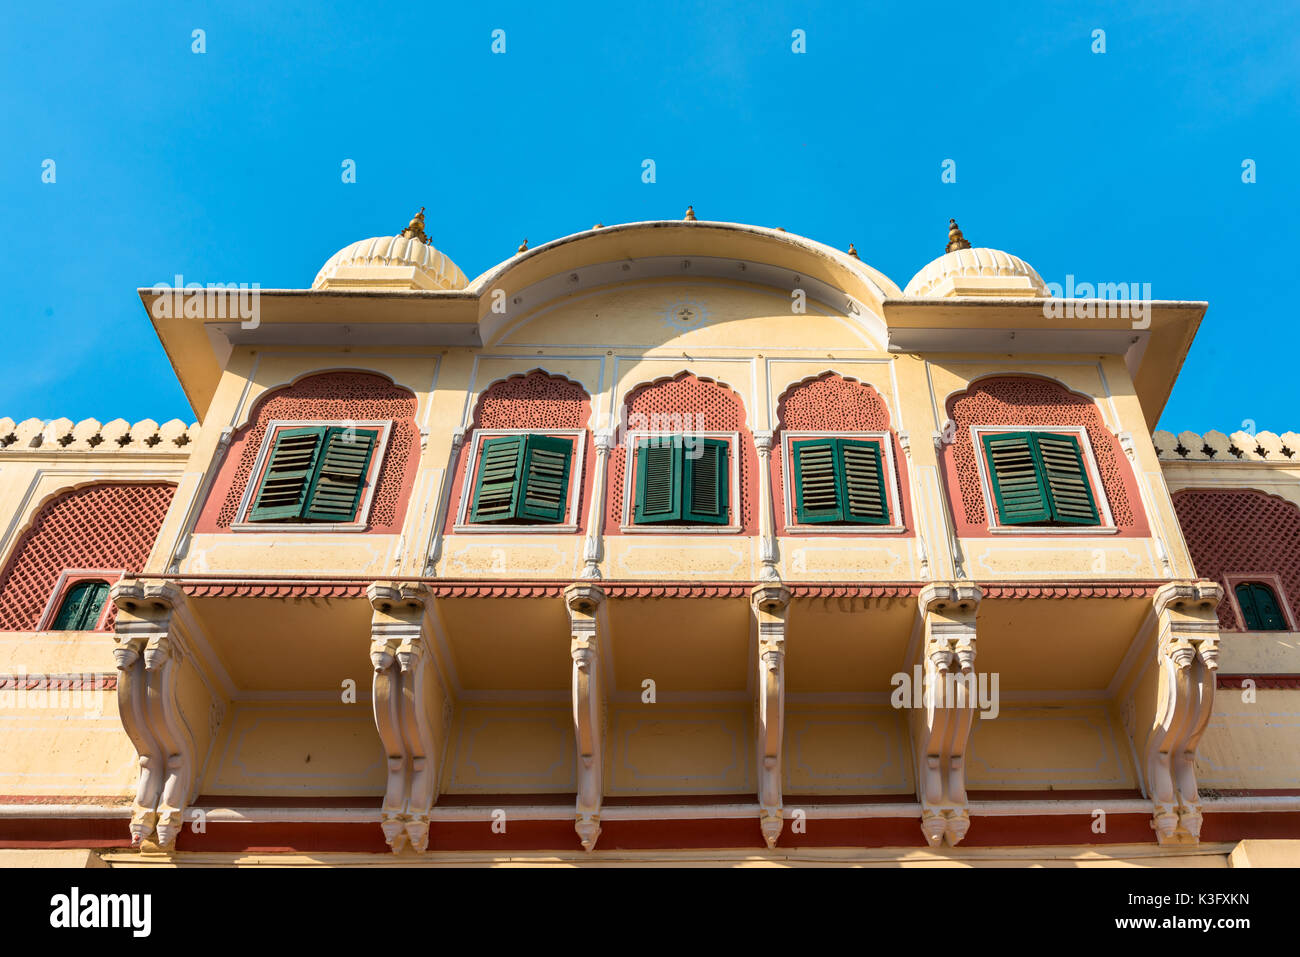 Horizontal picture of the windows of Chandra Mahal inside of City Palace in Jaipur, known as pink city of Rajasthan in India. - Stock Image